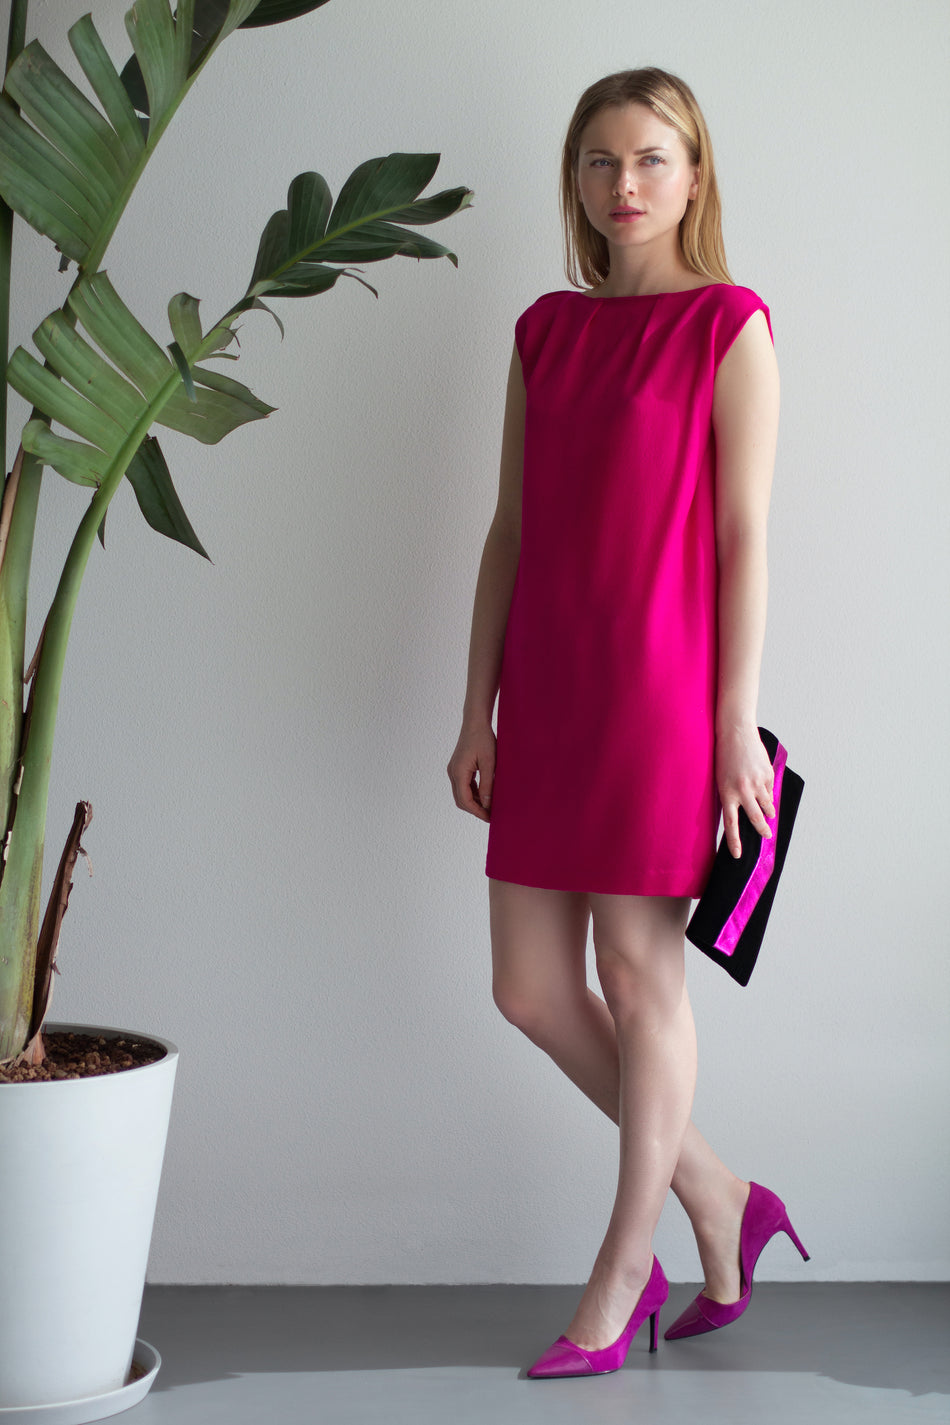 DIDI Minidress in Crepella Fuchsia